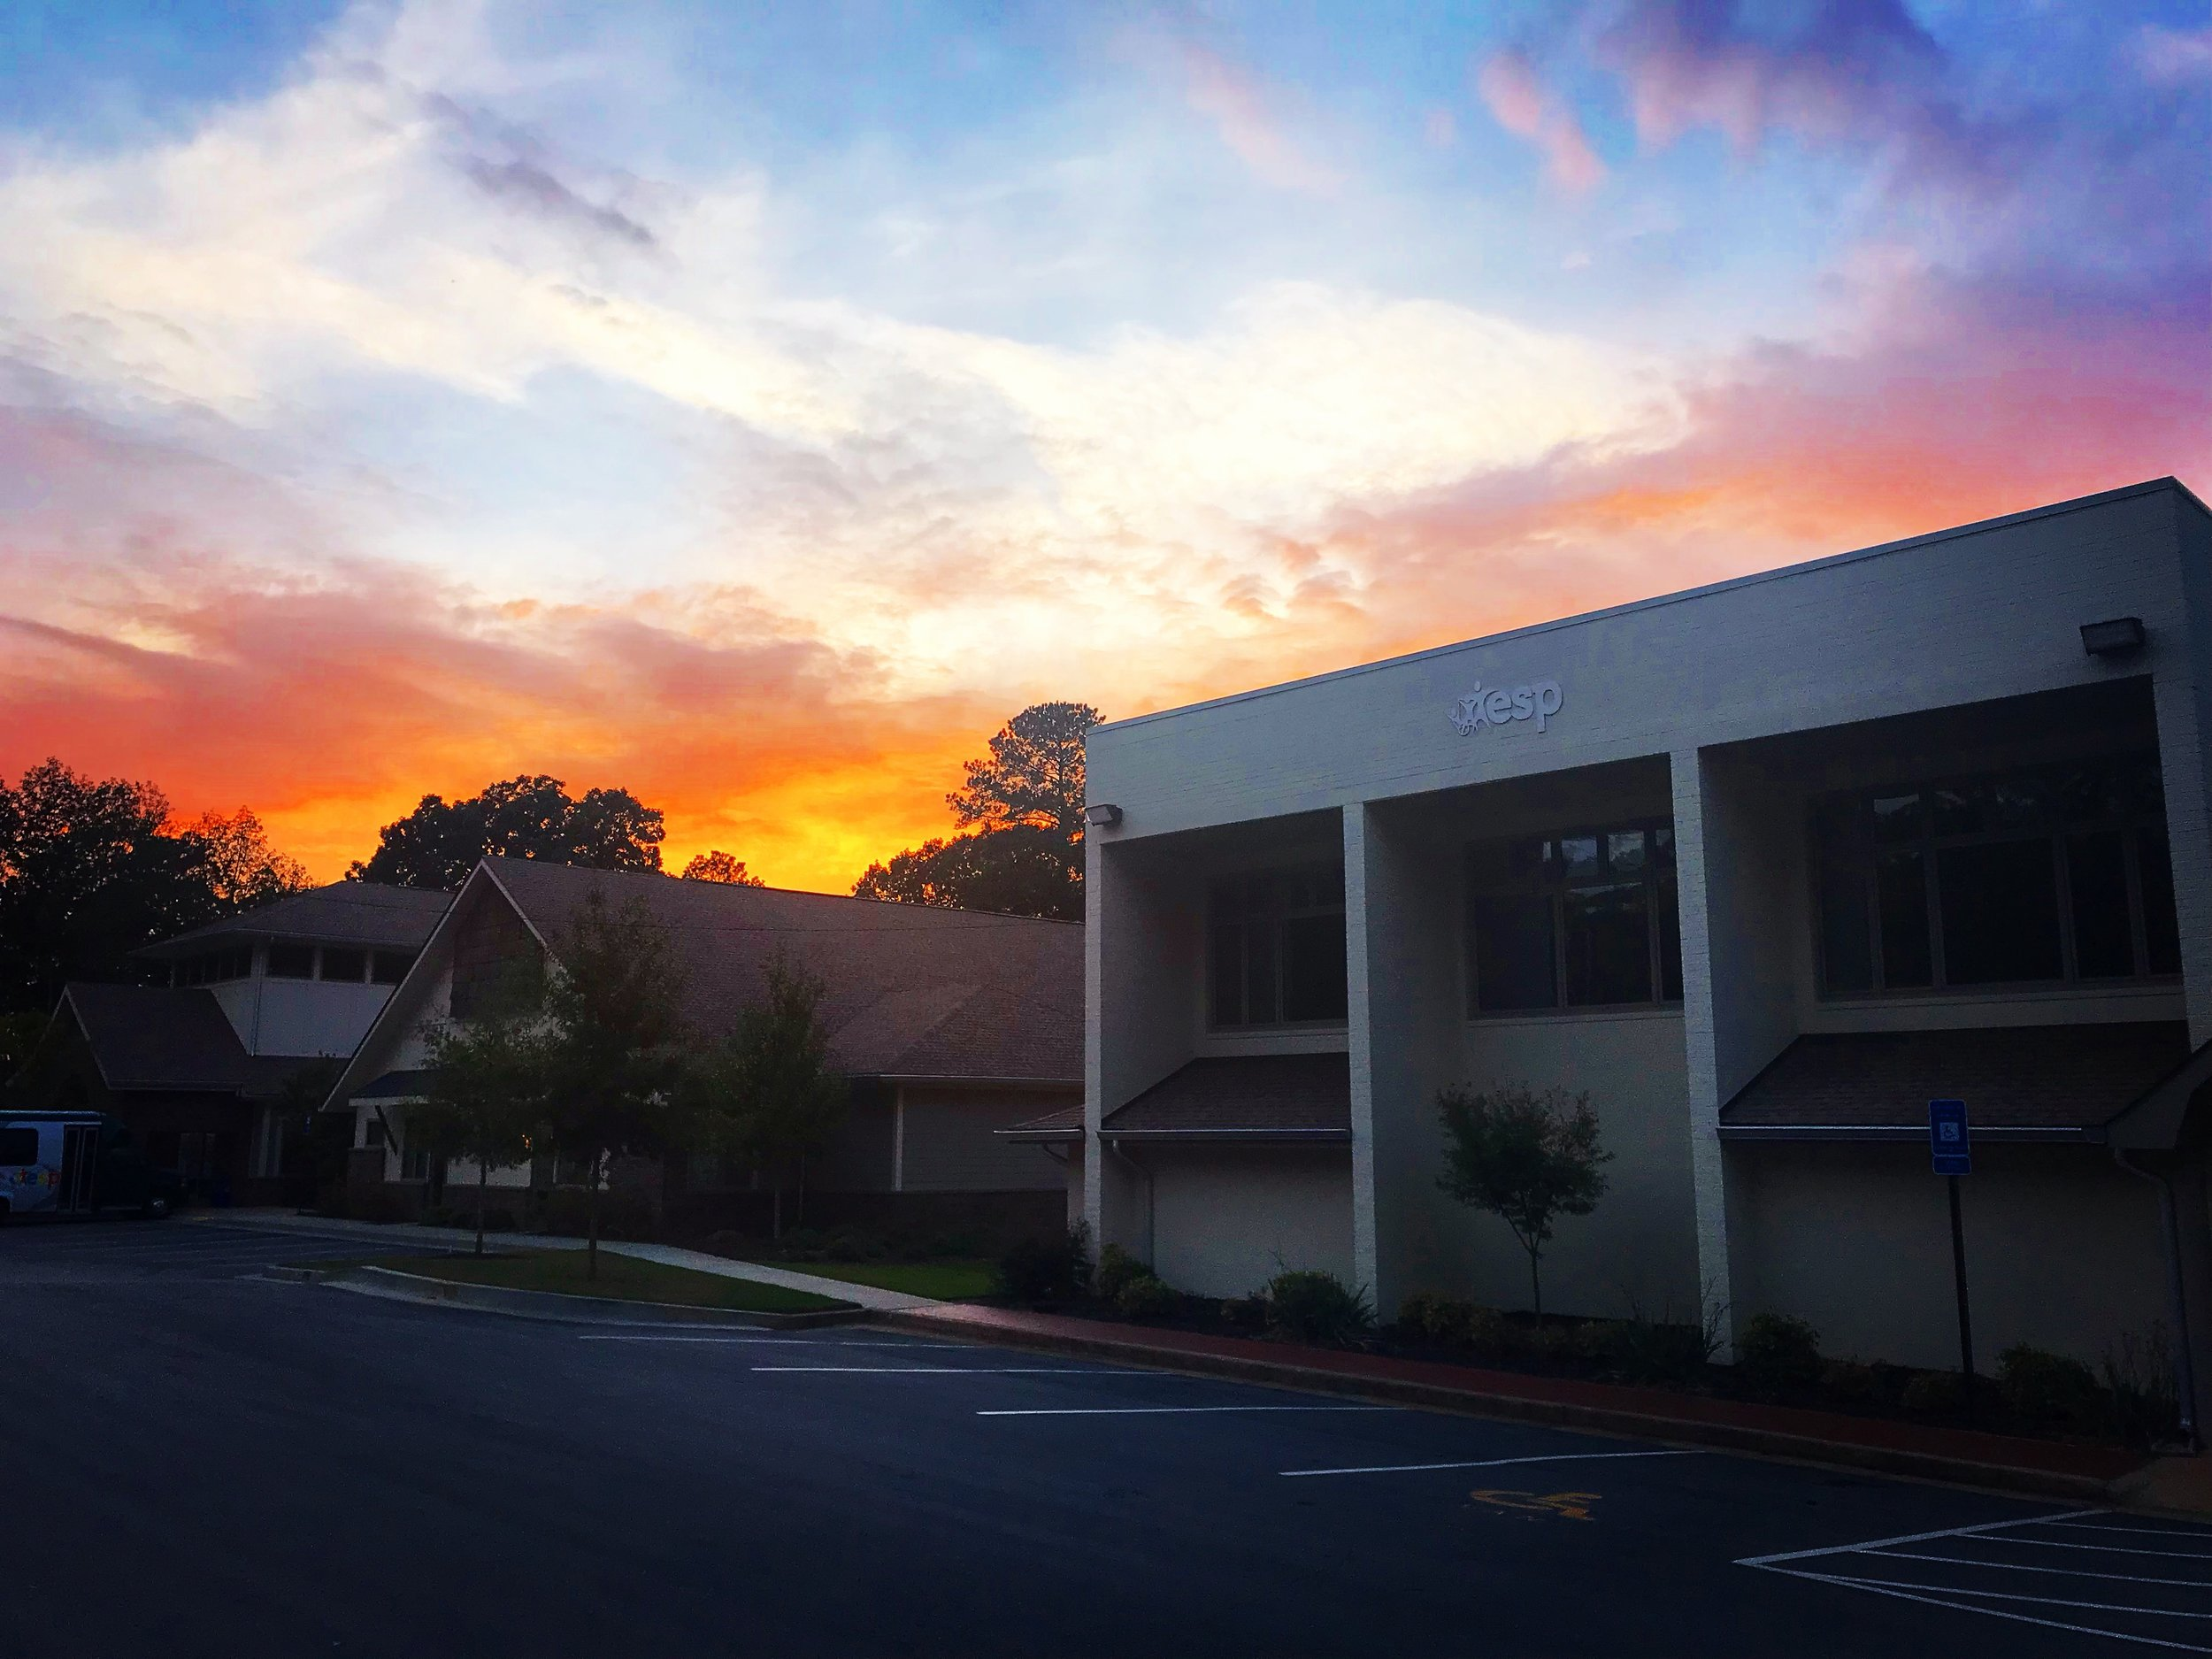 The painted sky last night over the building she built next to the building we built. A perfect pair in fulfilling the mission.